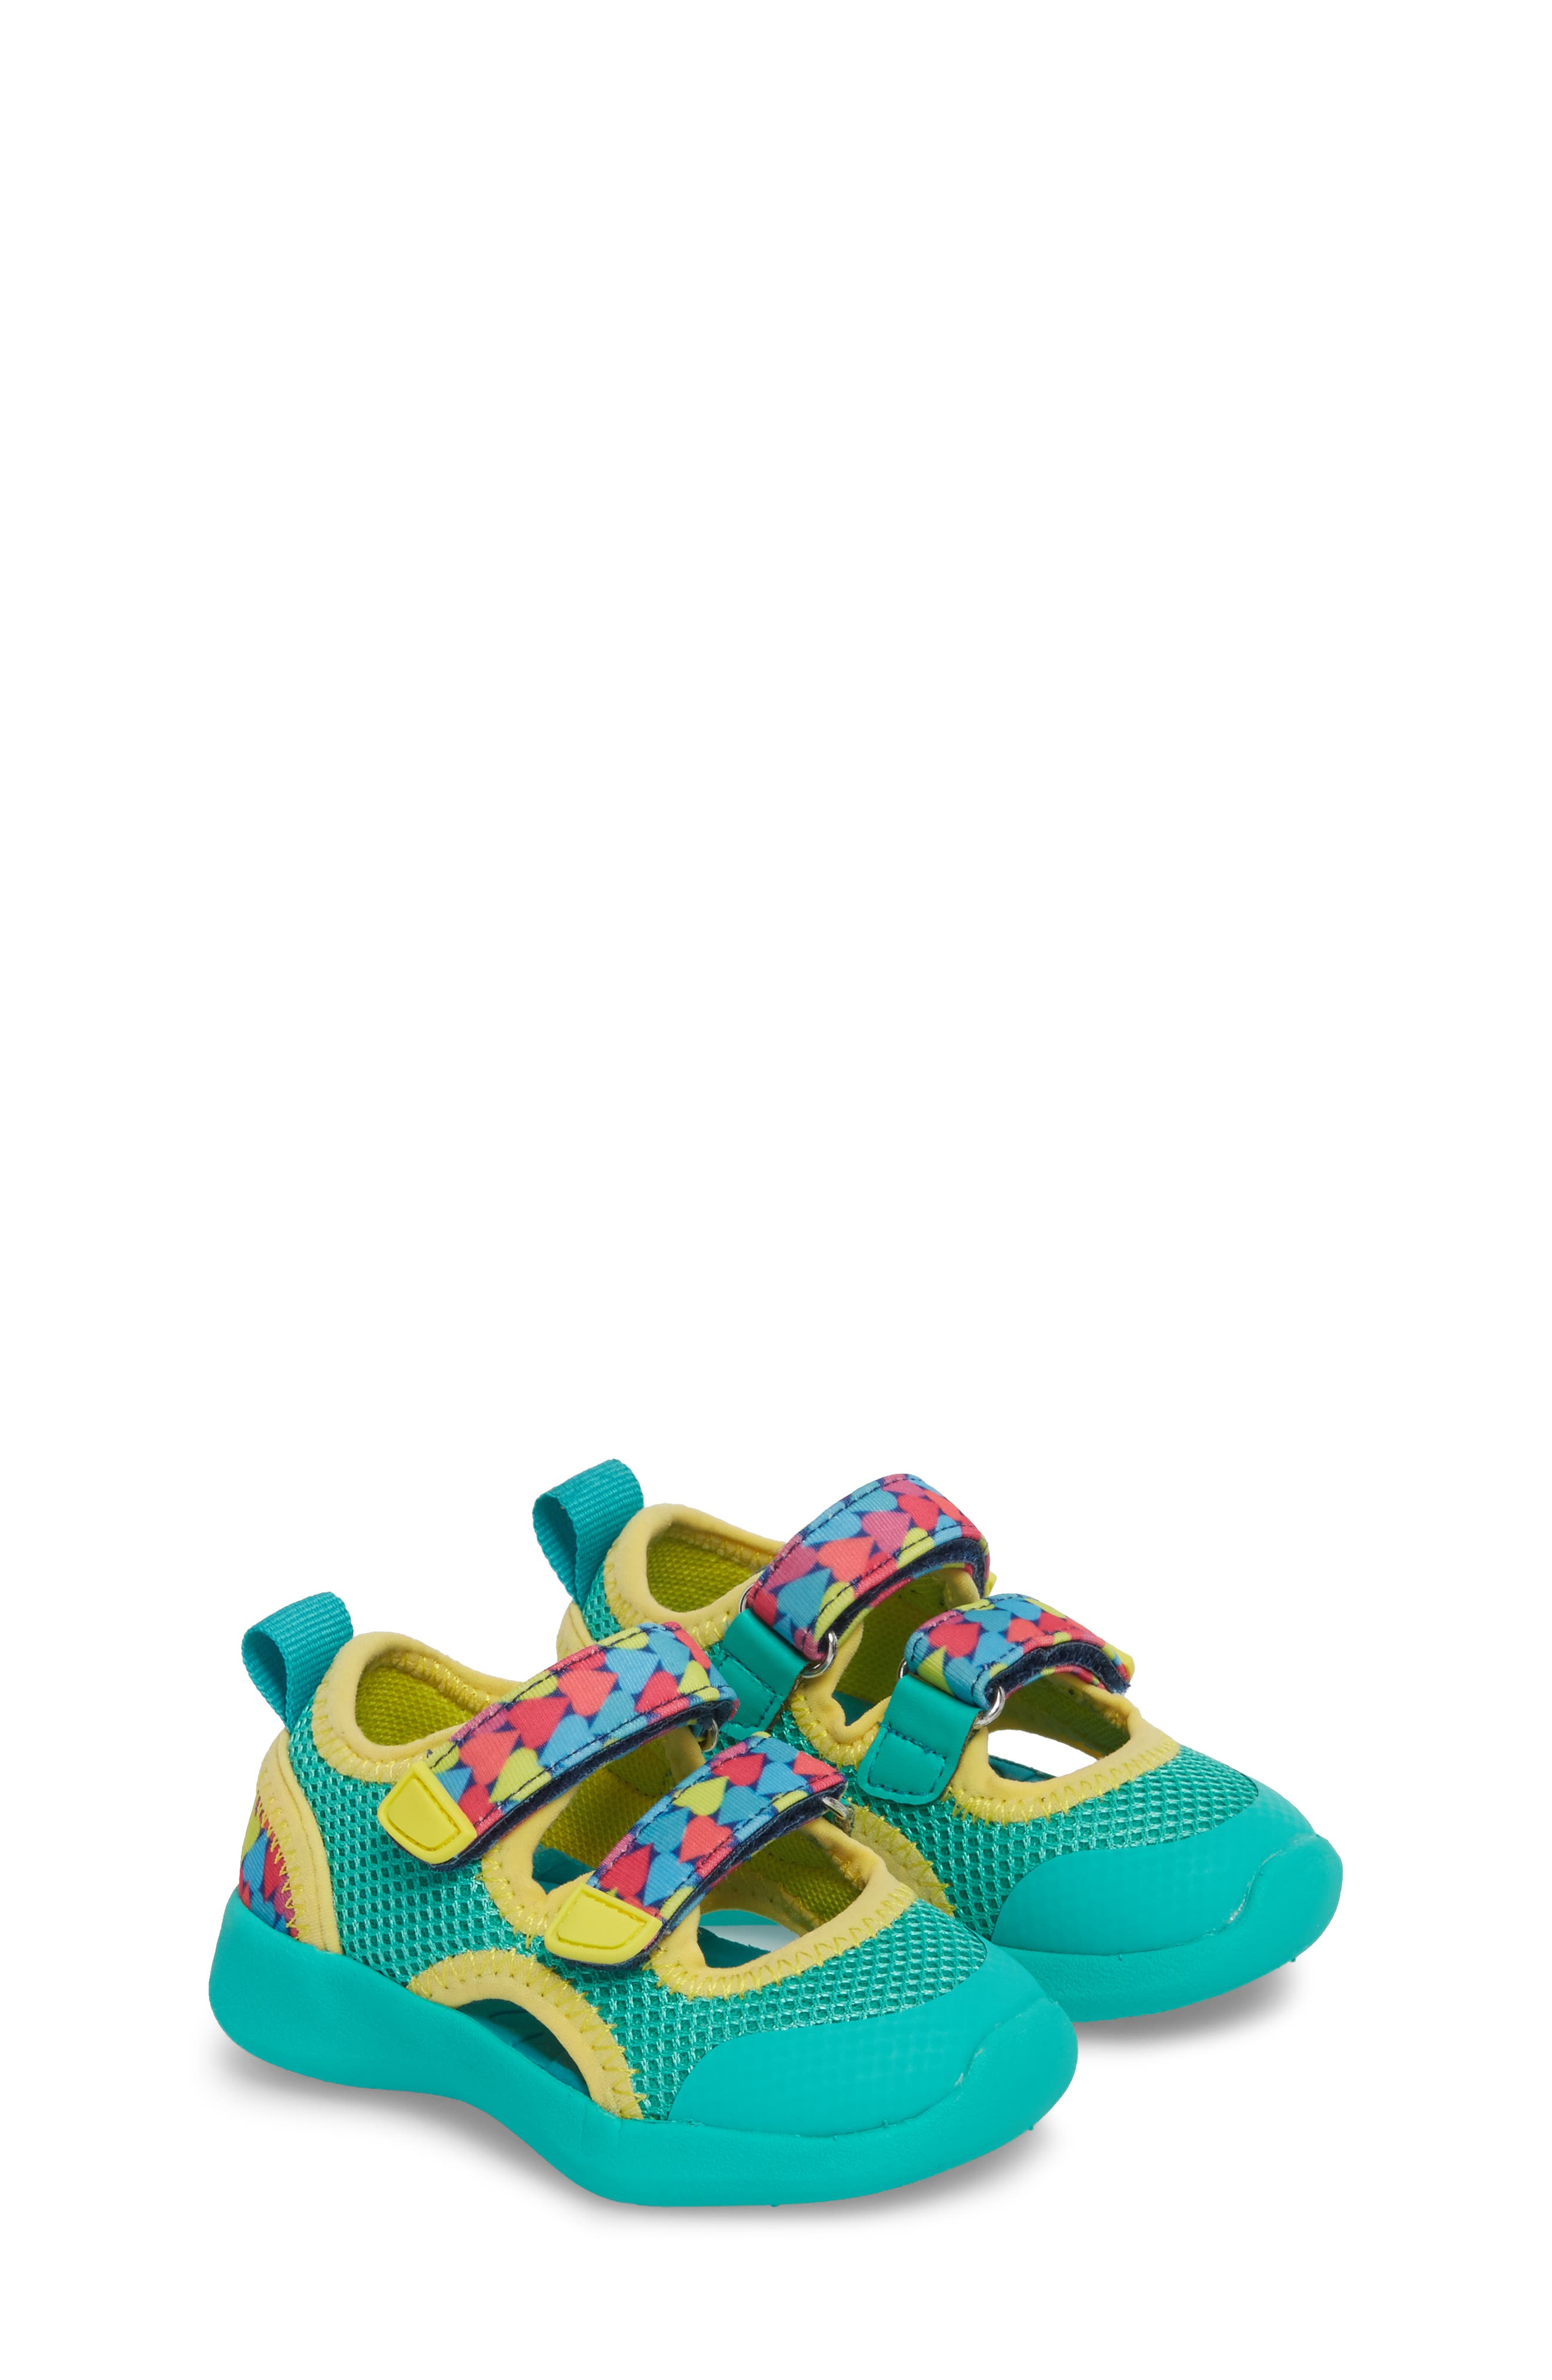 CHOOZE Sneak Water Friendly Sandal (Walker, Toddler & Little Kid)